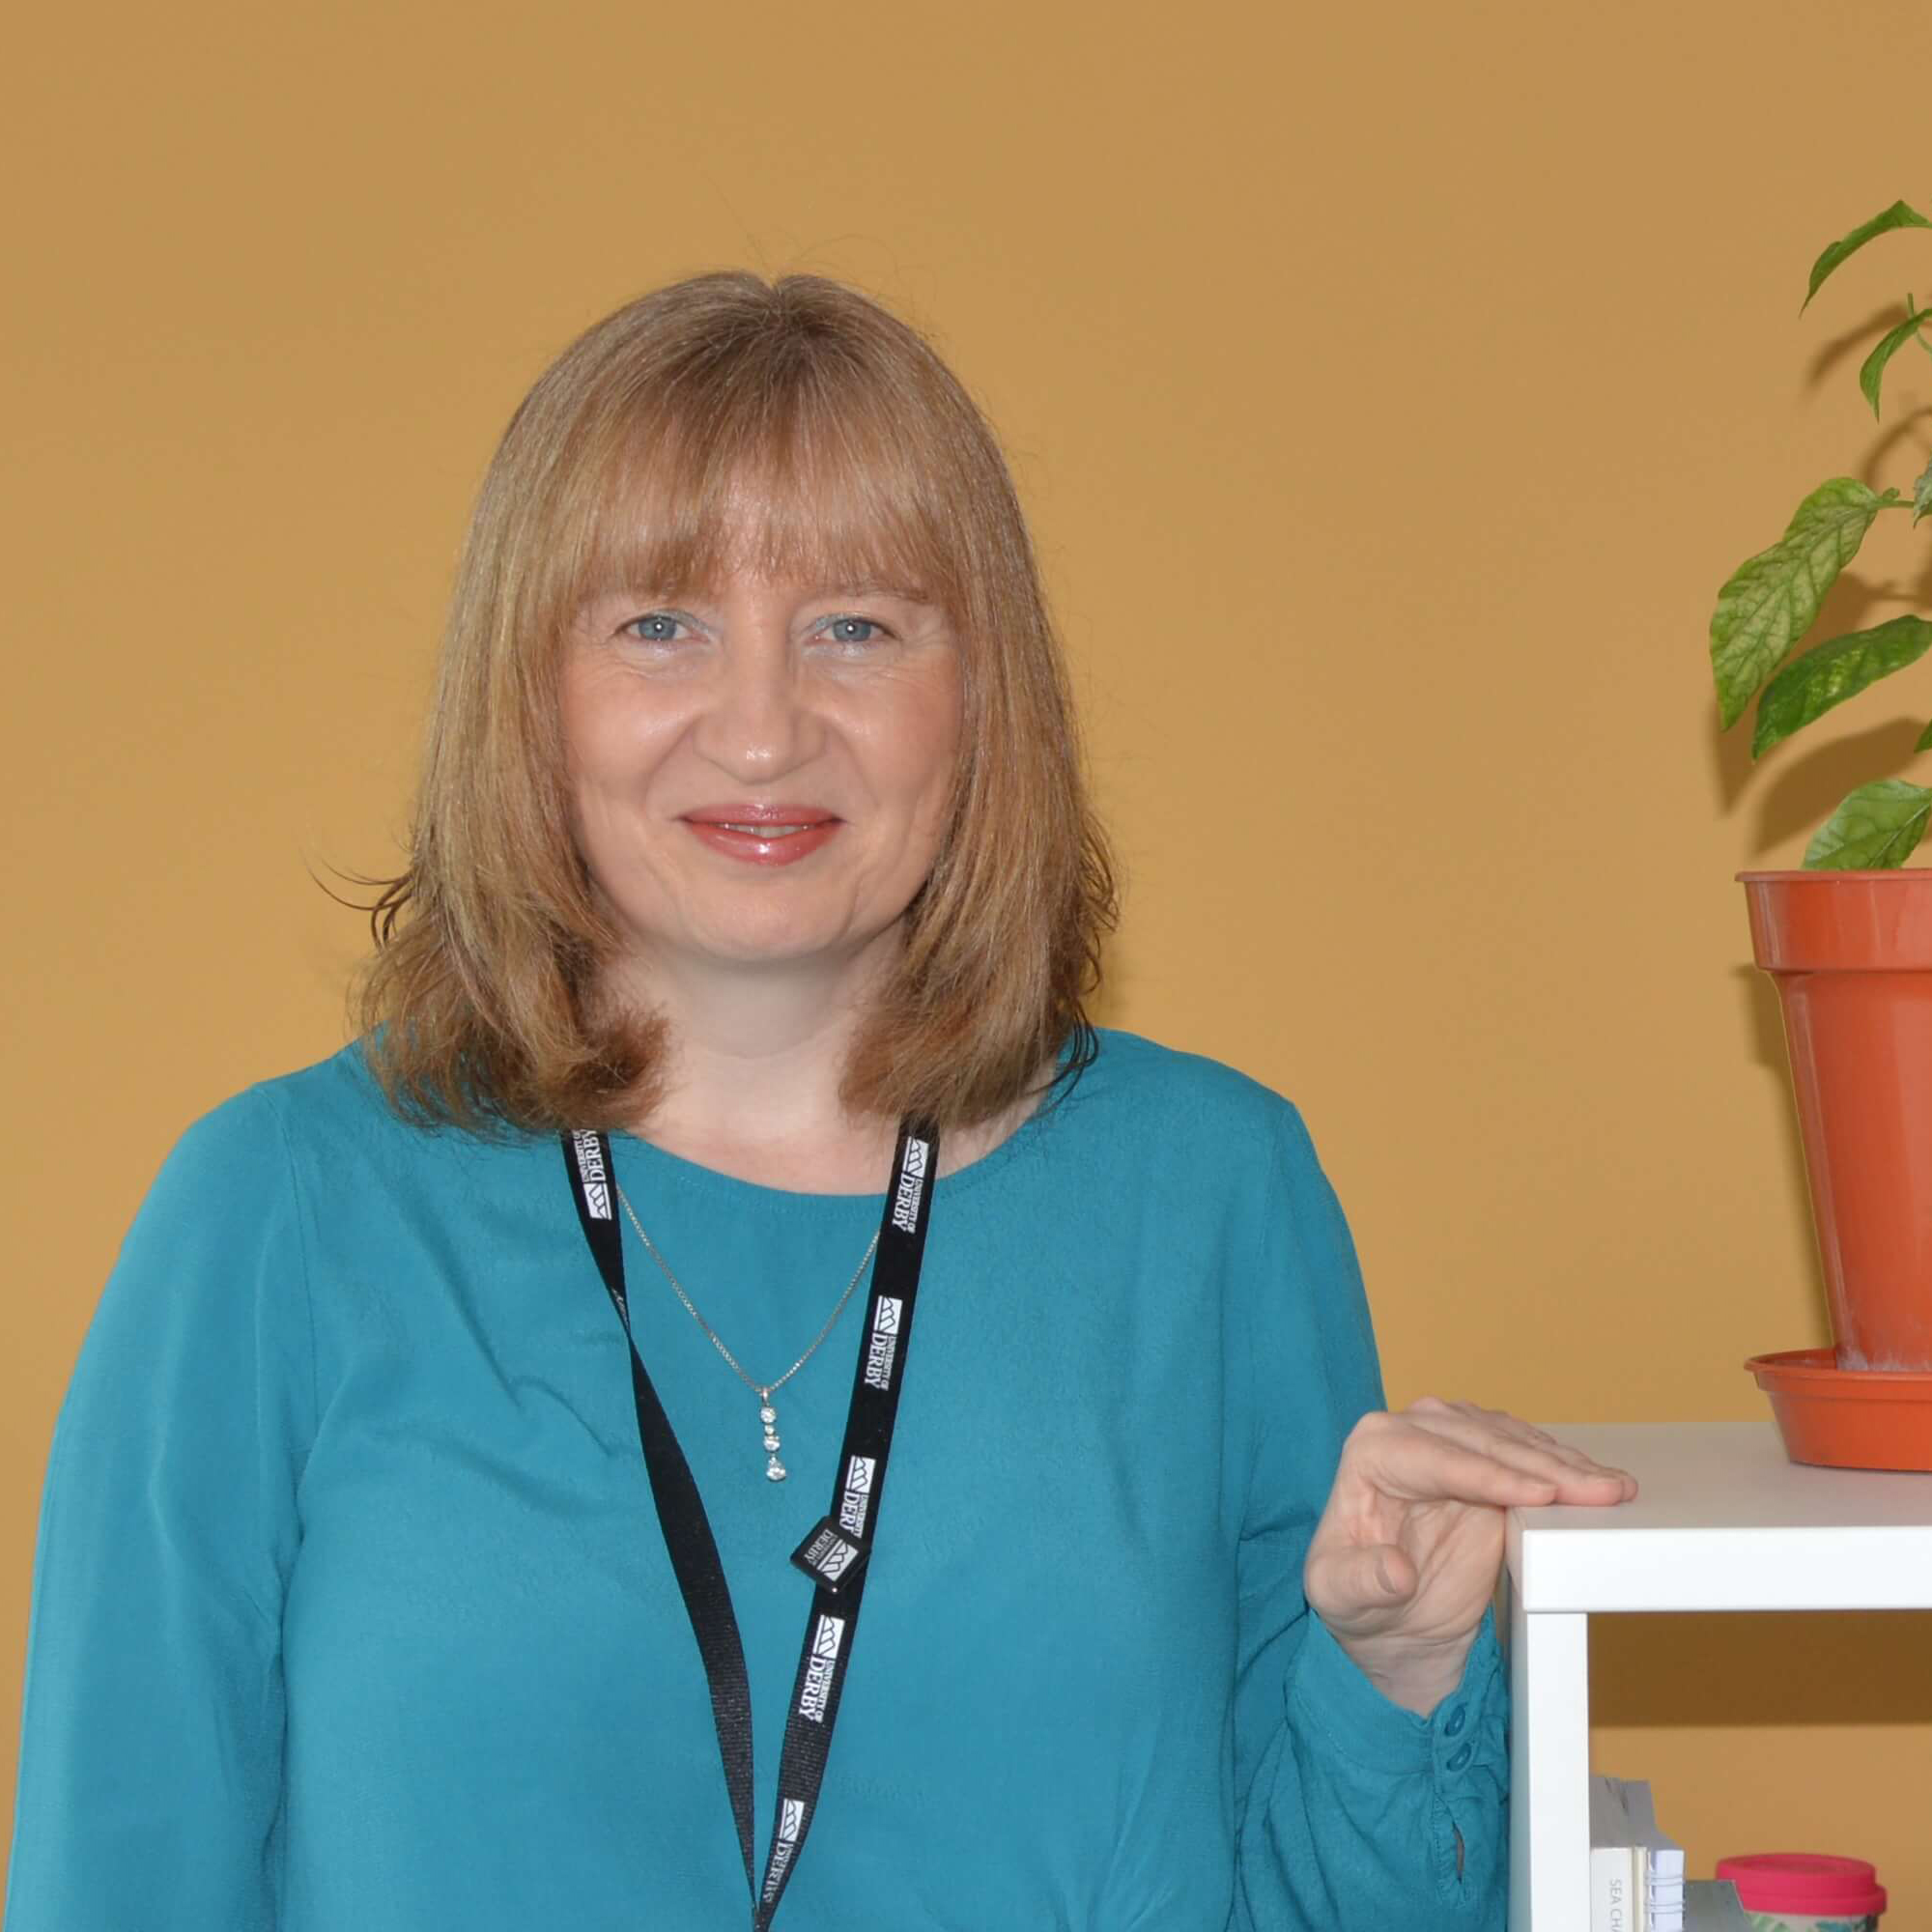 A head shot of Senior Leadership and Strategy Lecturer, Orla Kelleher standing by a bookshelf